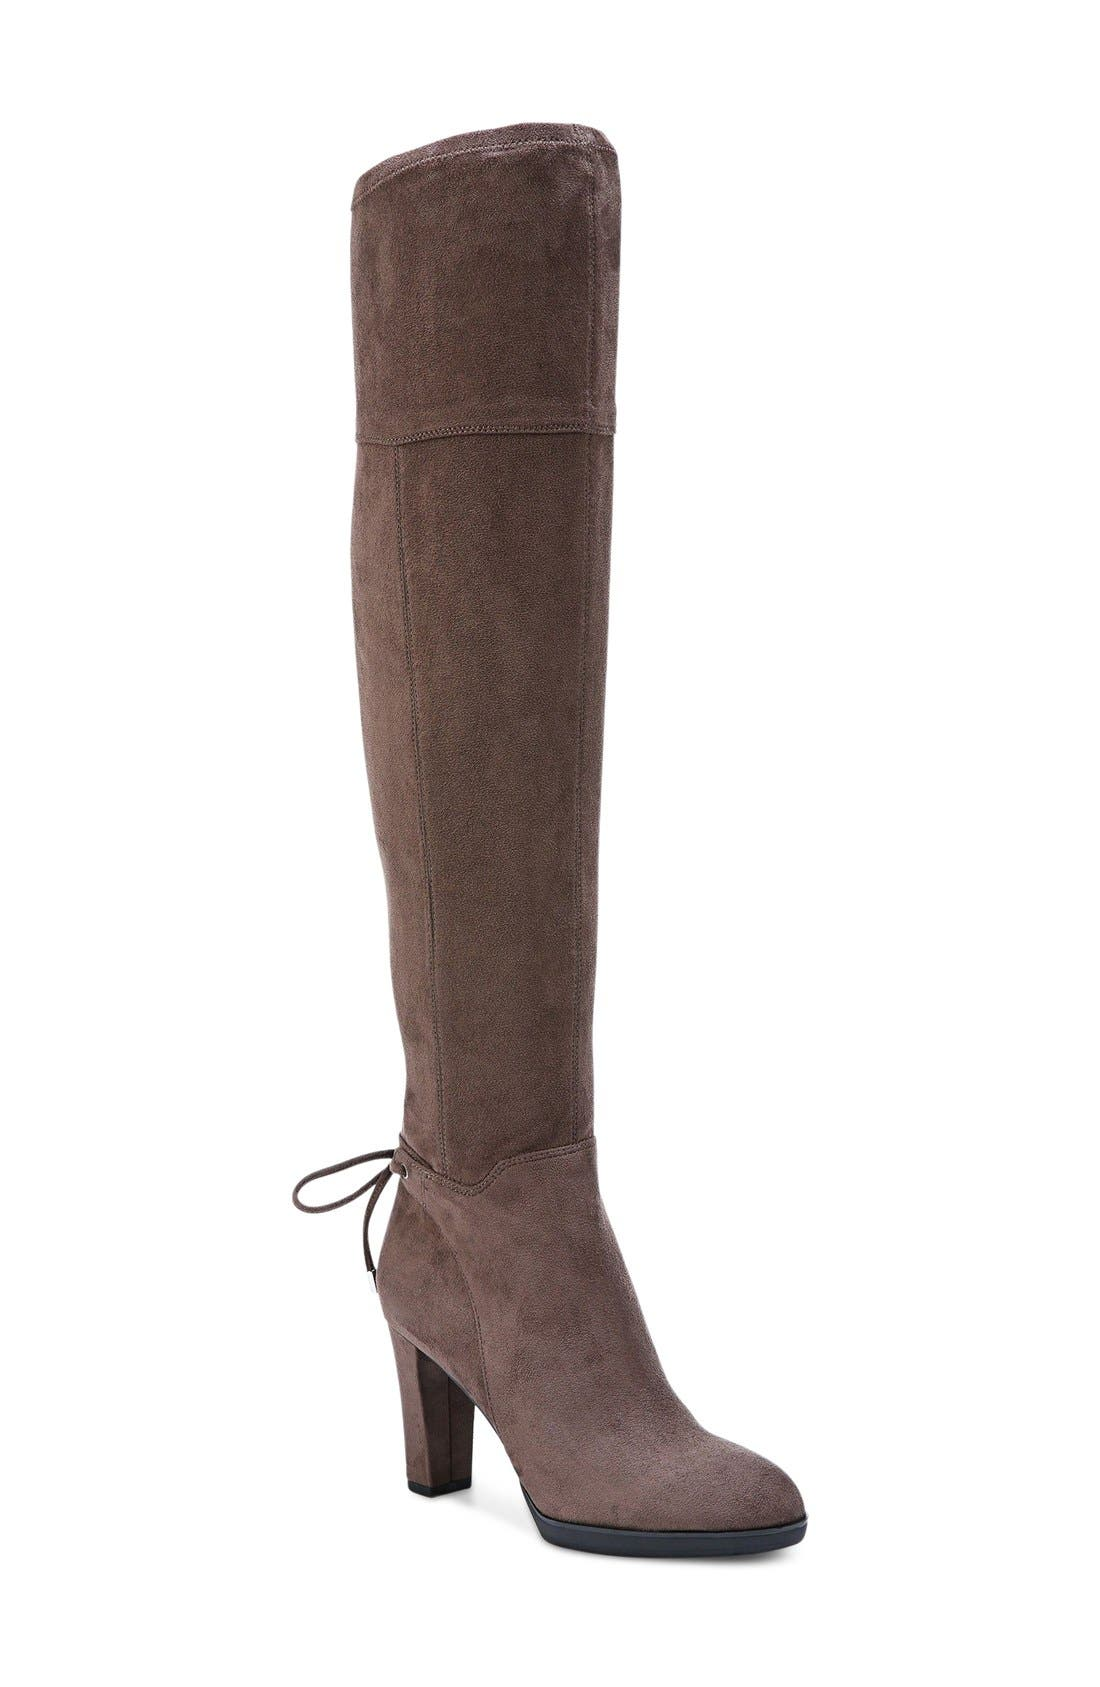 Ivanea Over the Knee Boot,                             Main thumbnail 1, color,                             Taupe Suede